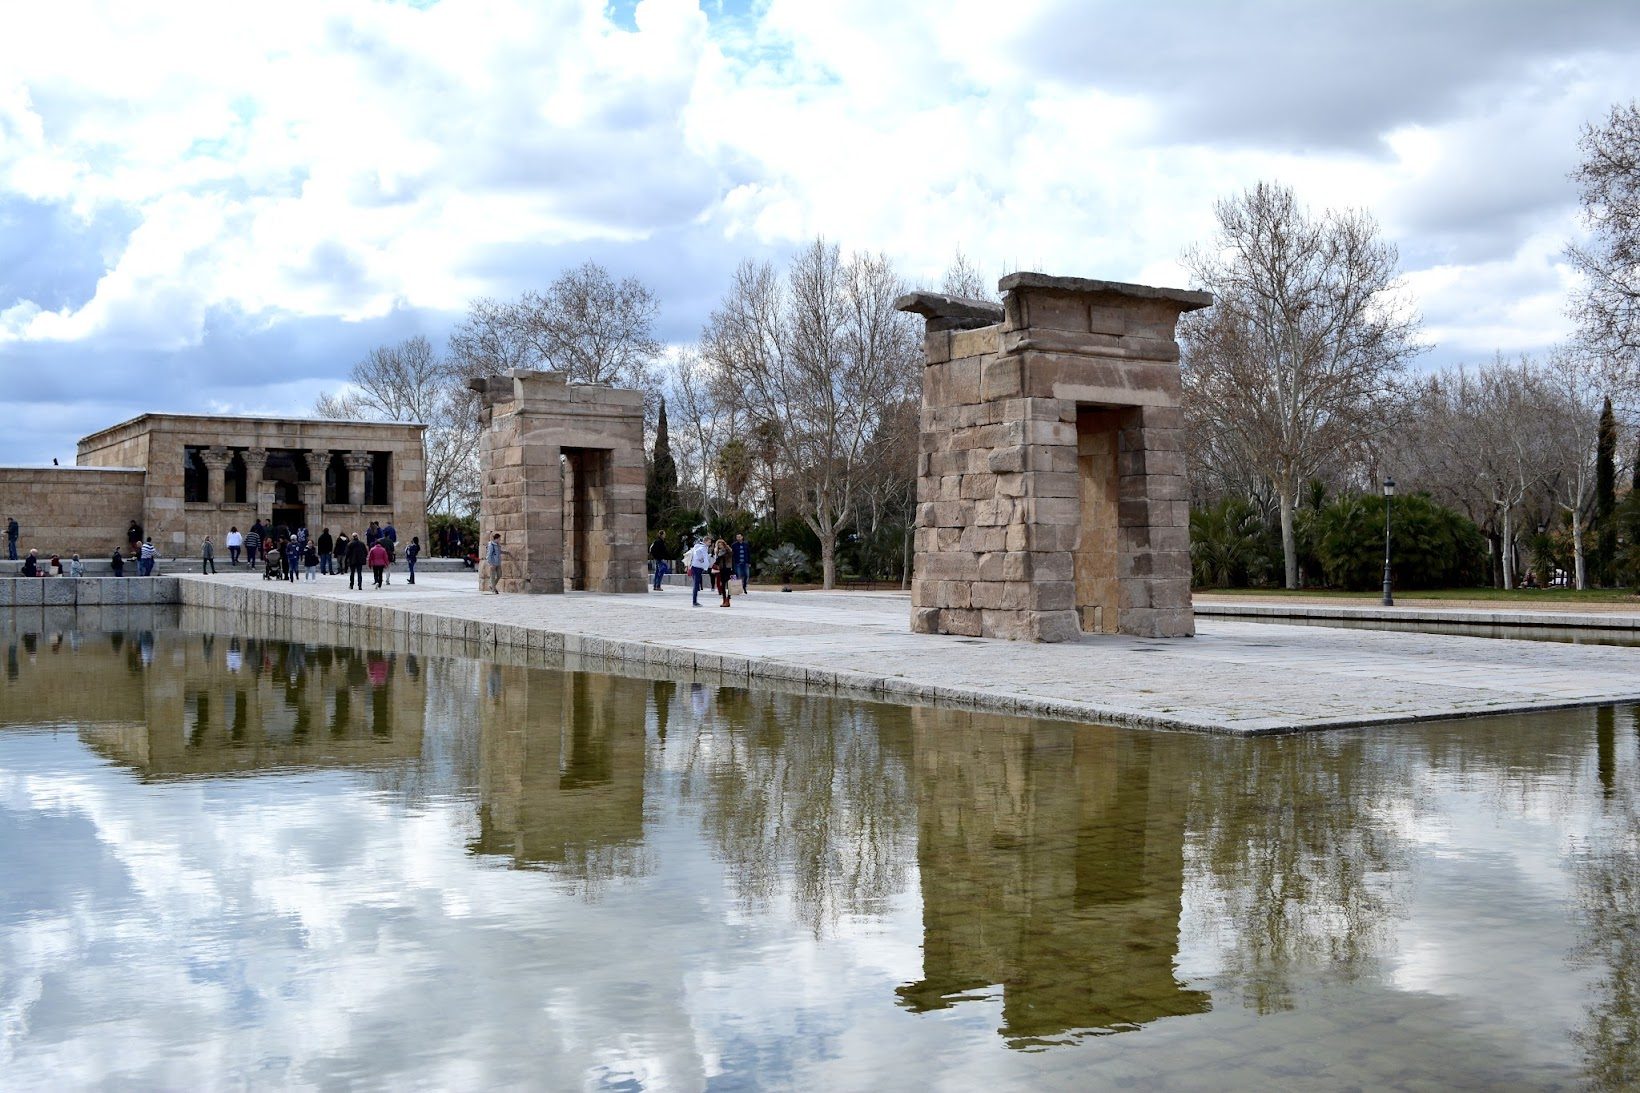 Templo de Debod, Madrid parks, parques de Madrid